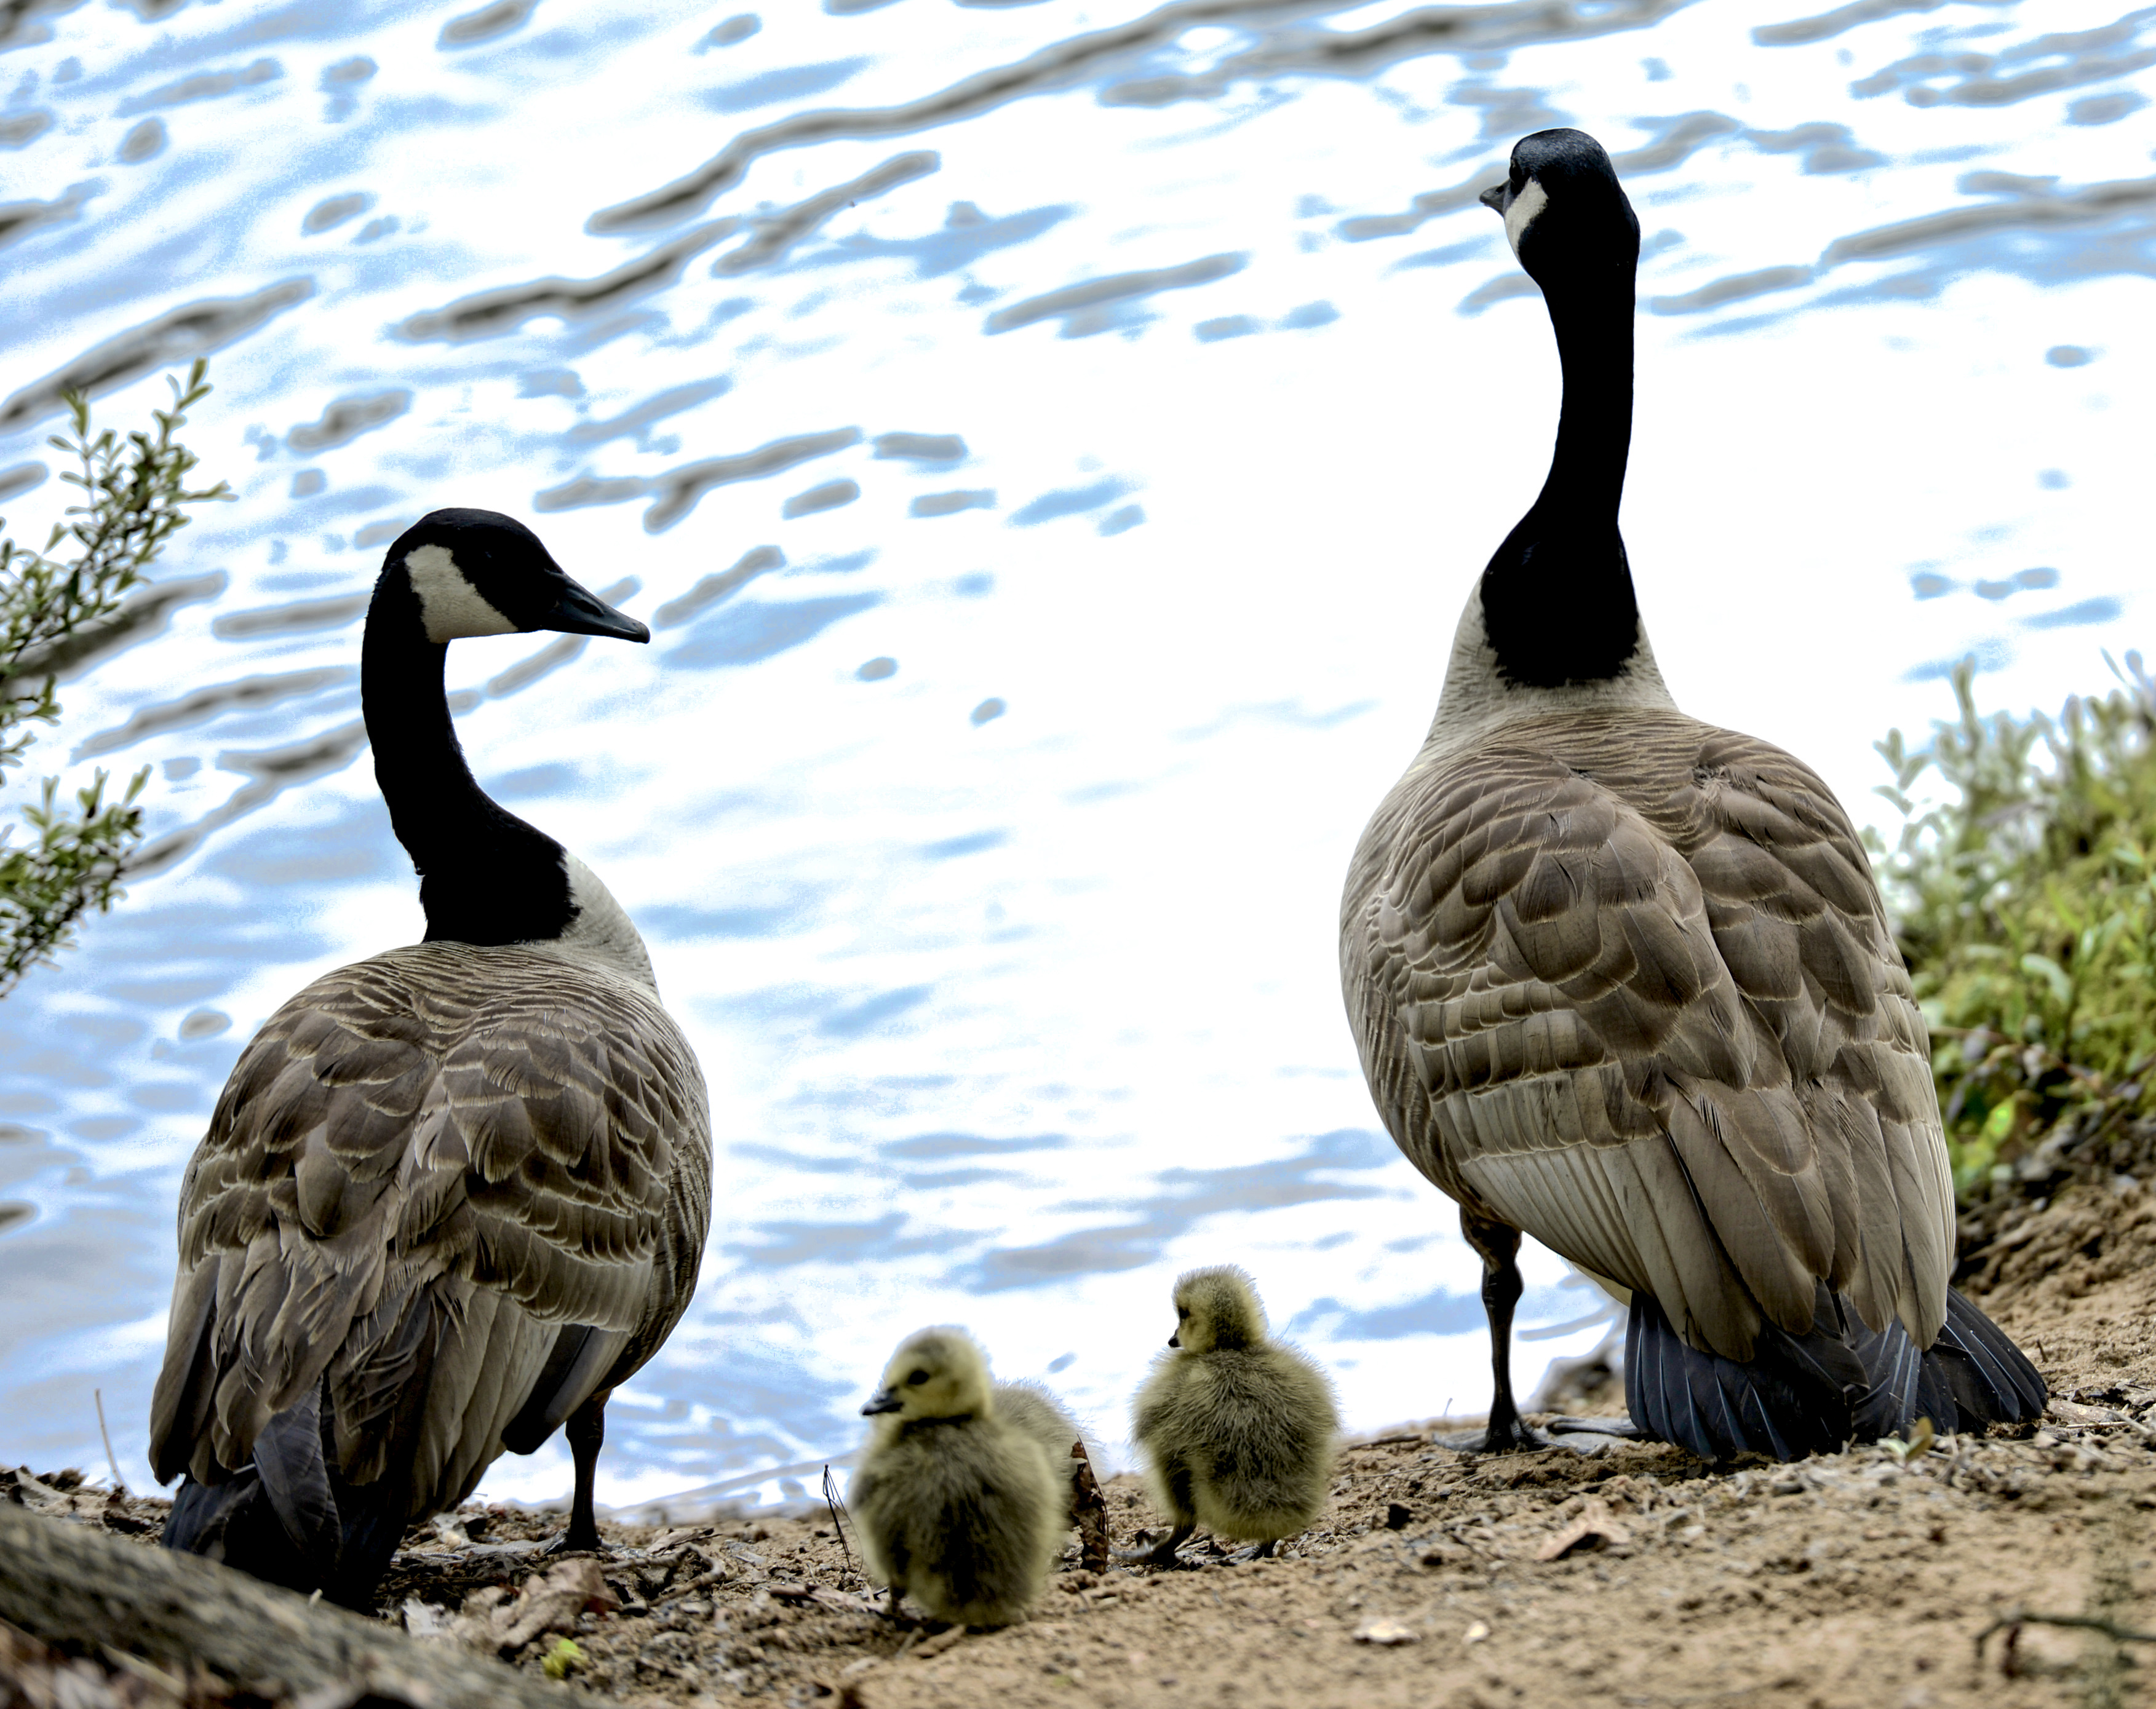 Wild Geese at River Park